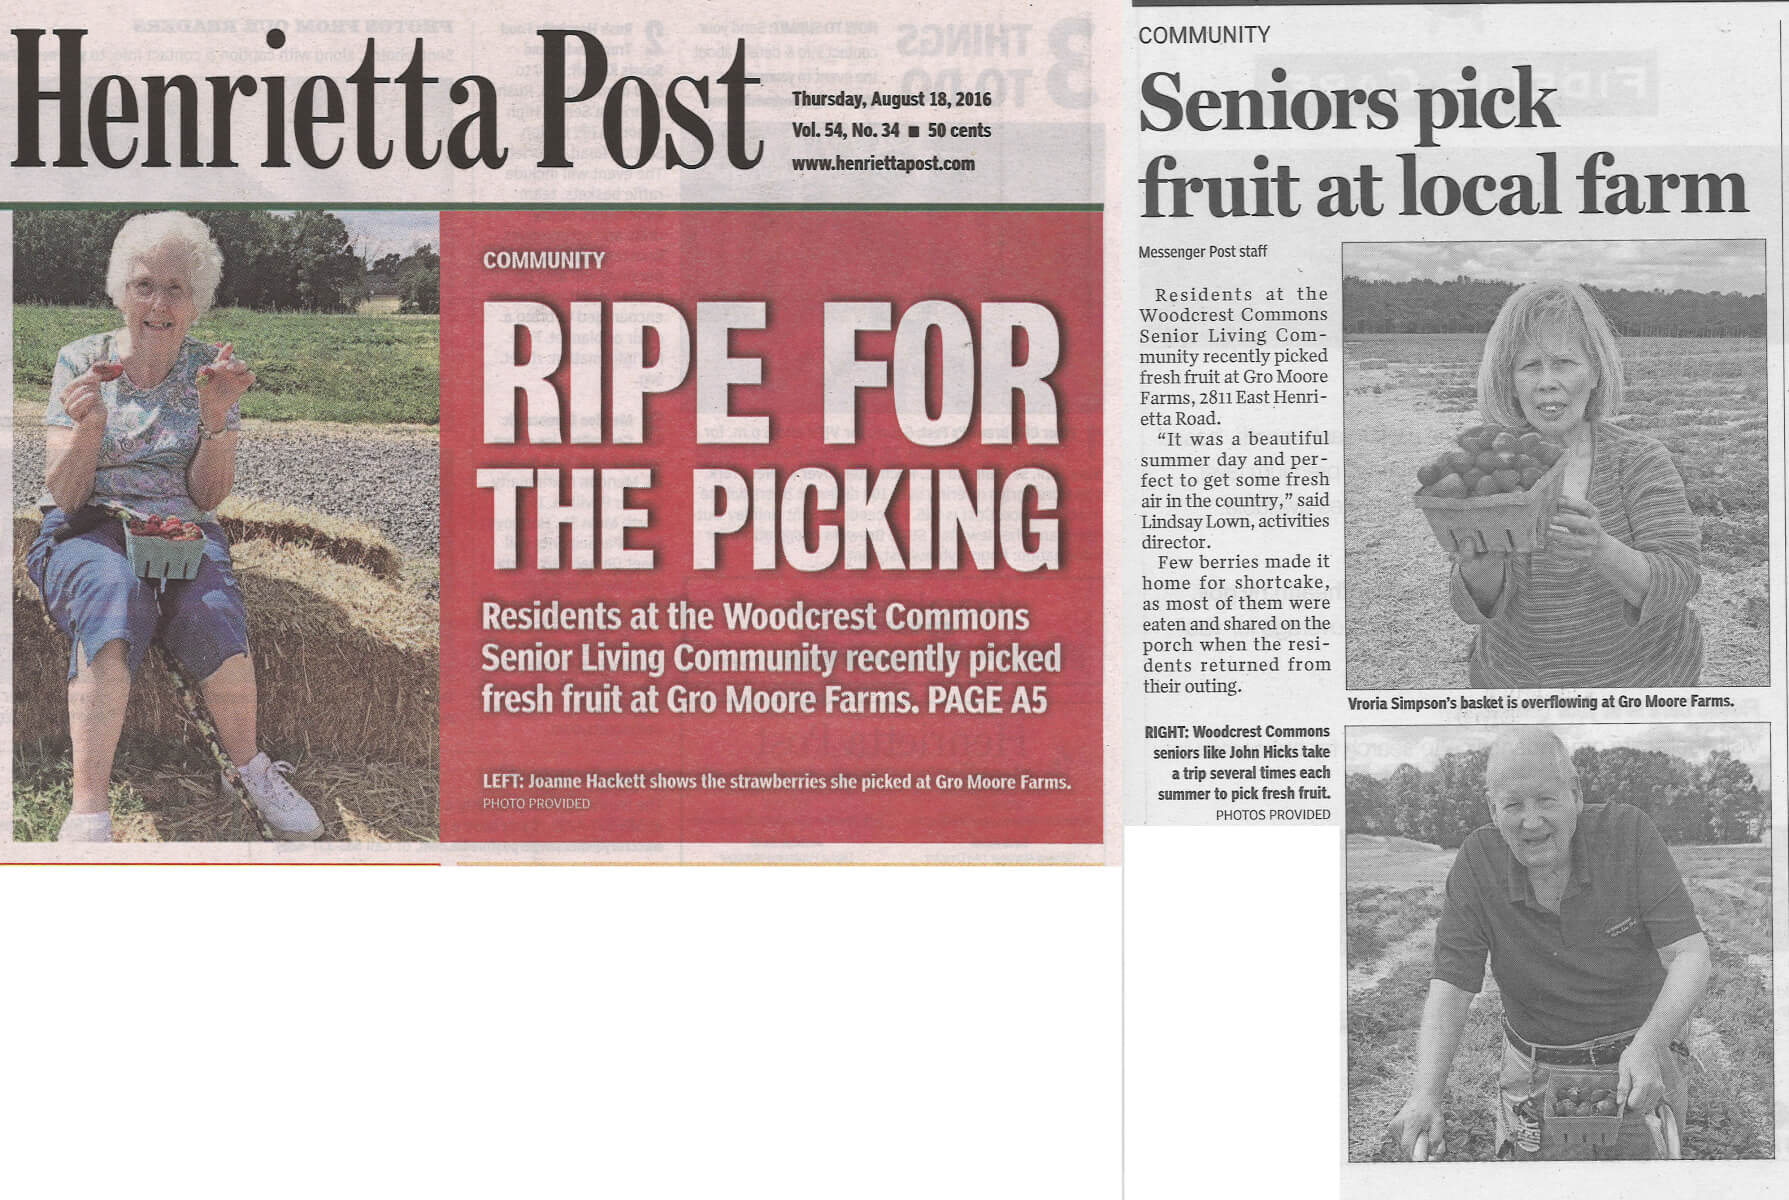 Westwood Commons residents pick Strawberries, August 18, 2016 story in the Henrietta Post